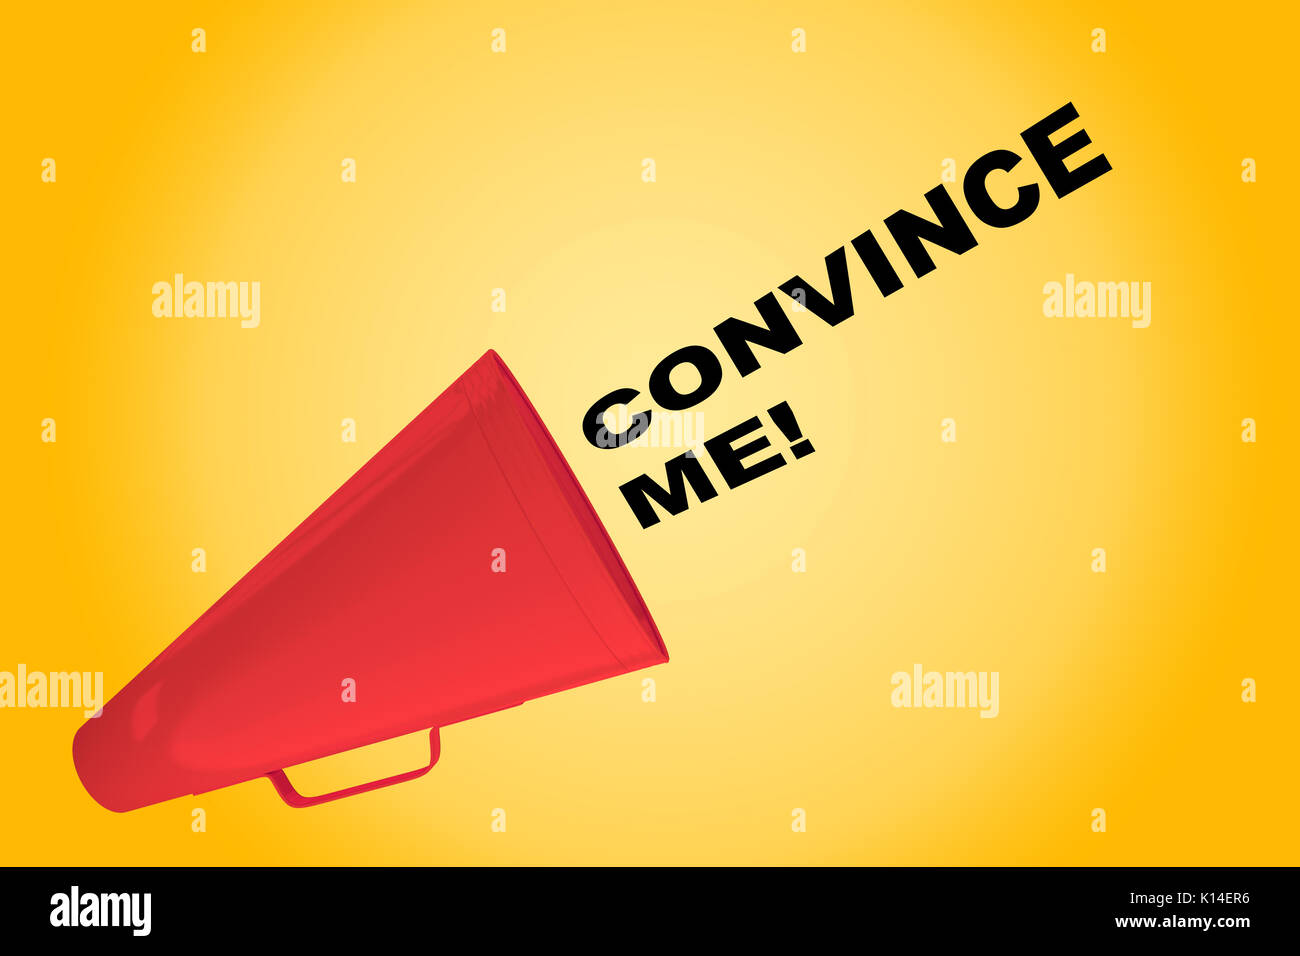 3D illustration of 'CONVINCE ME!' title flowing from a loudspeaker - Stock Image